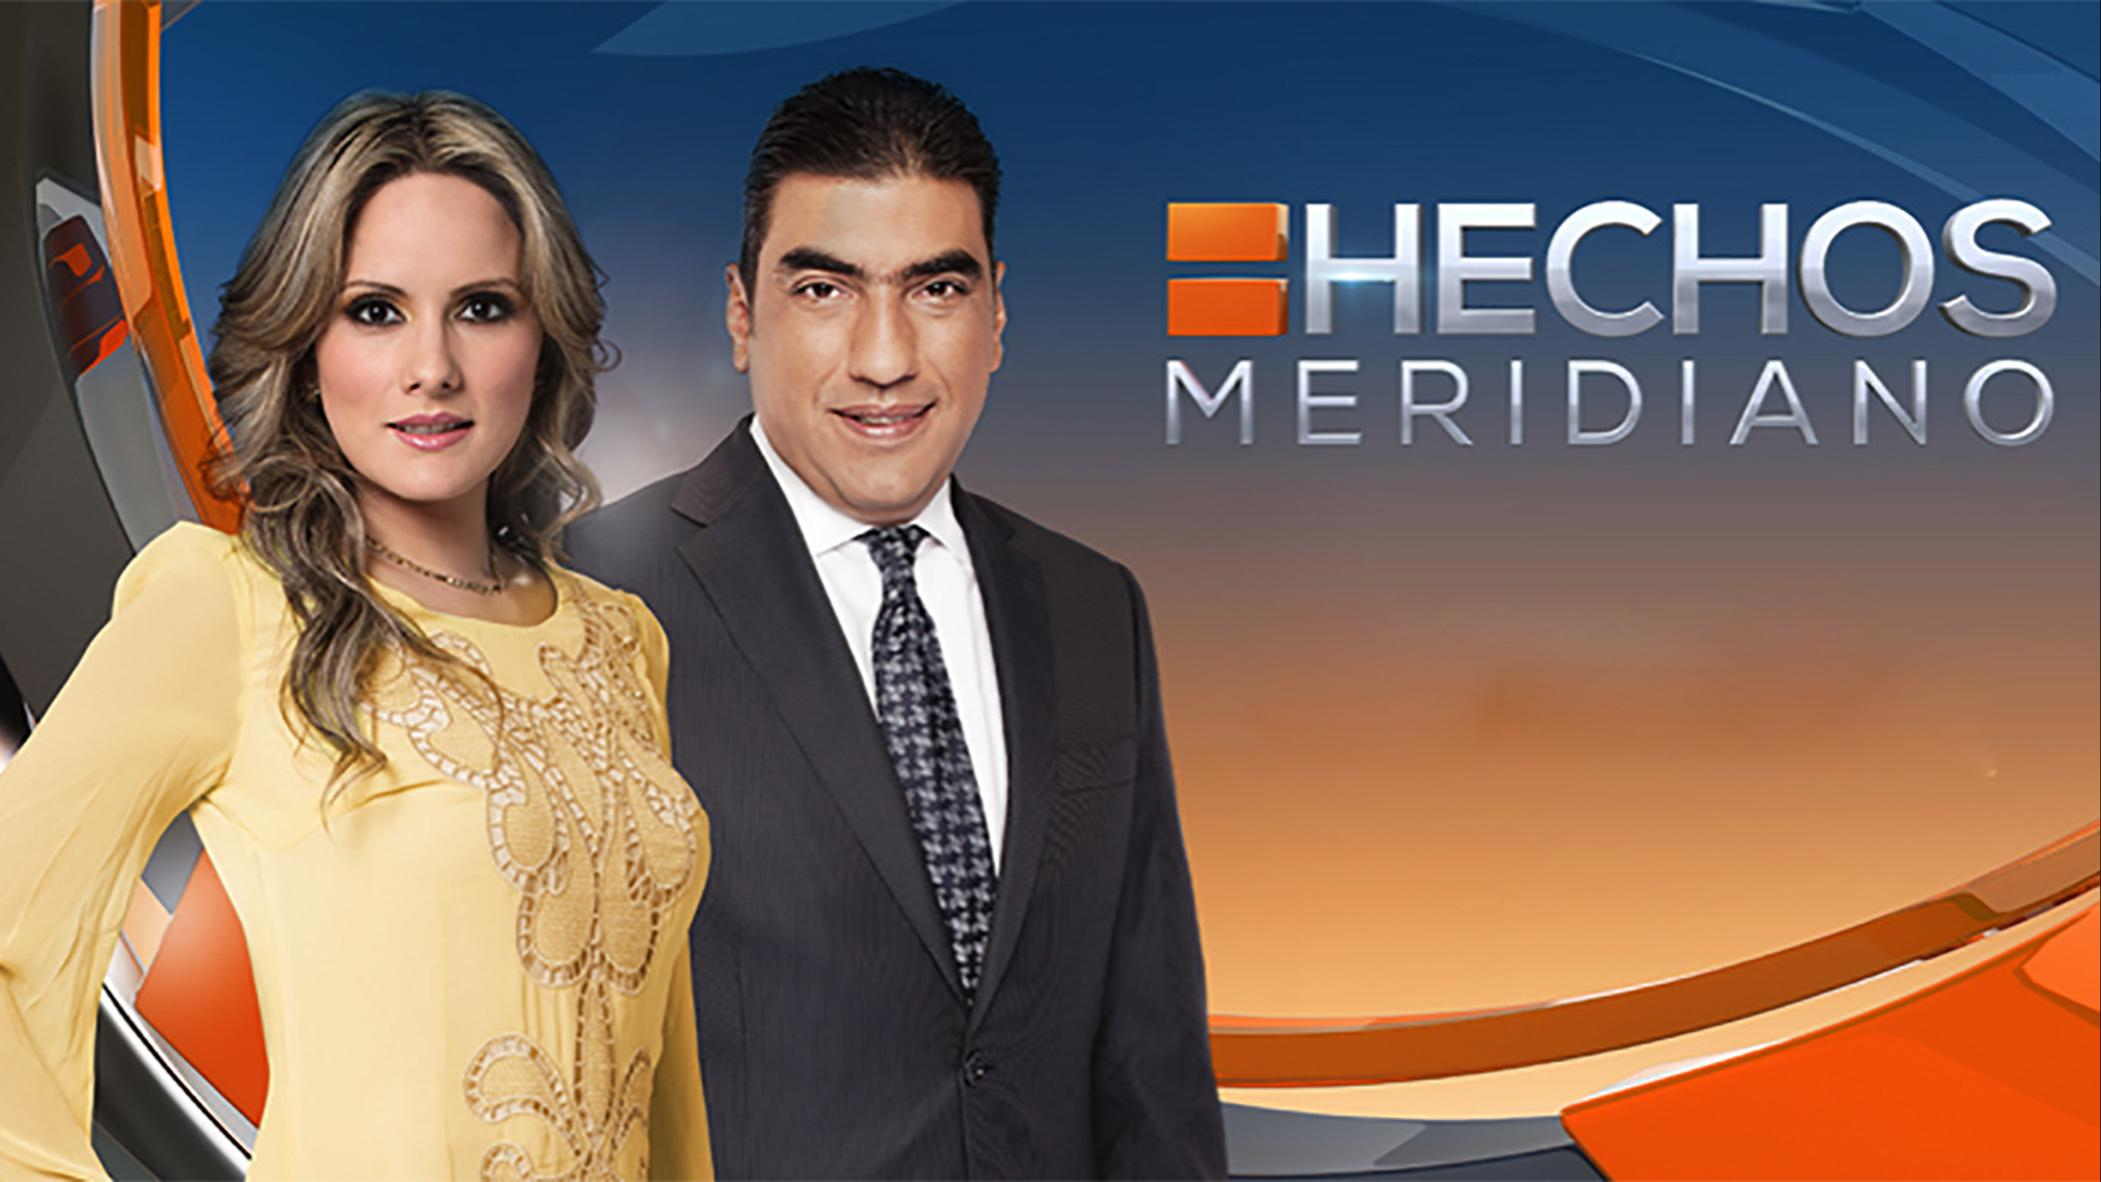 Stream And Watch Hechos Meridiano Online | Sling TV